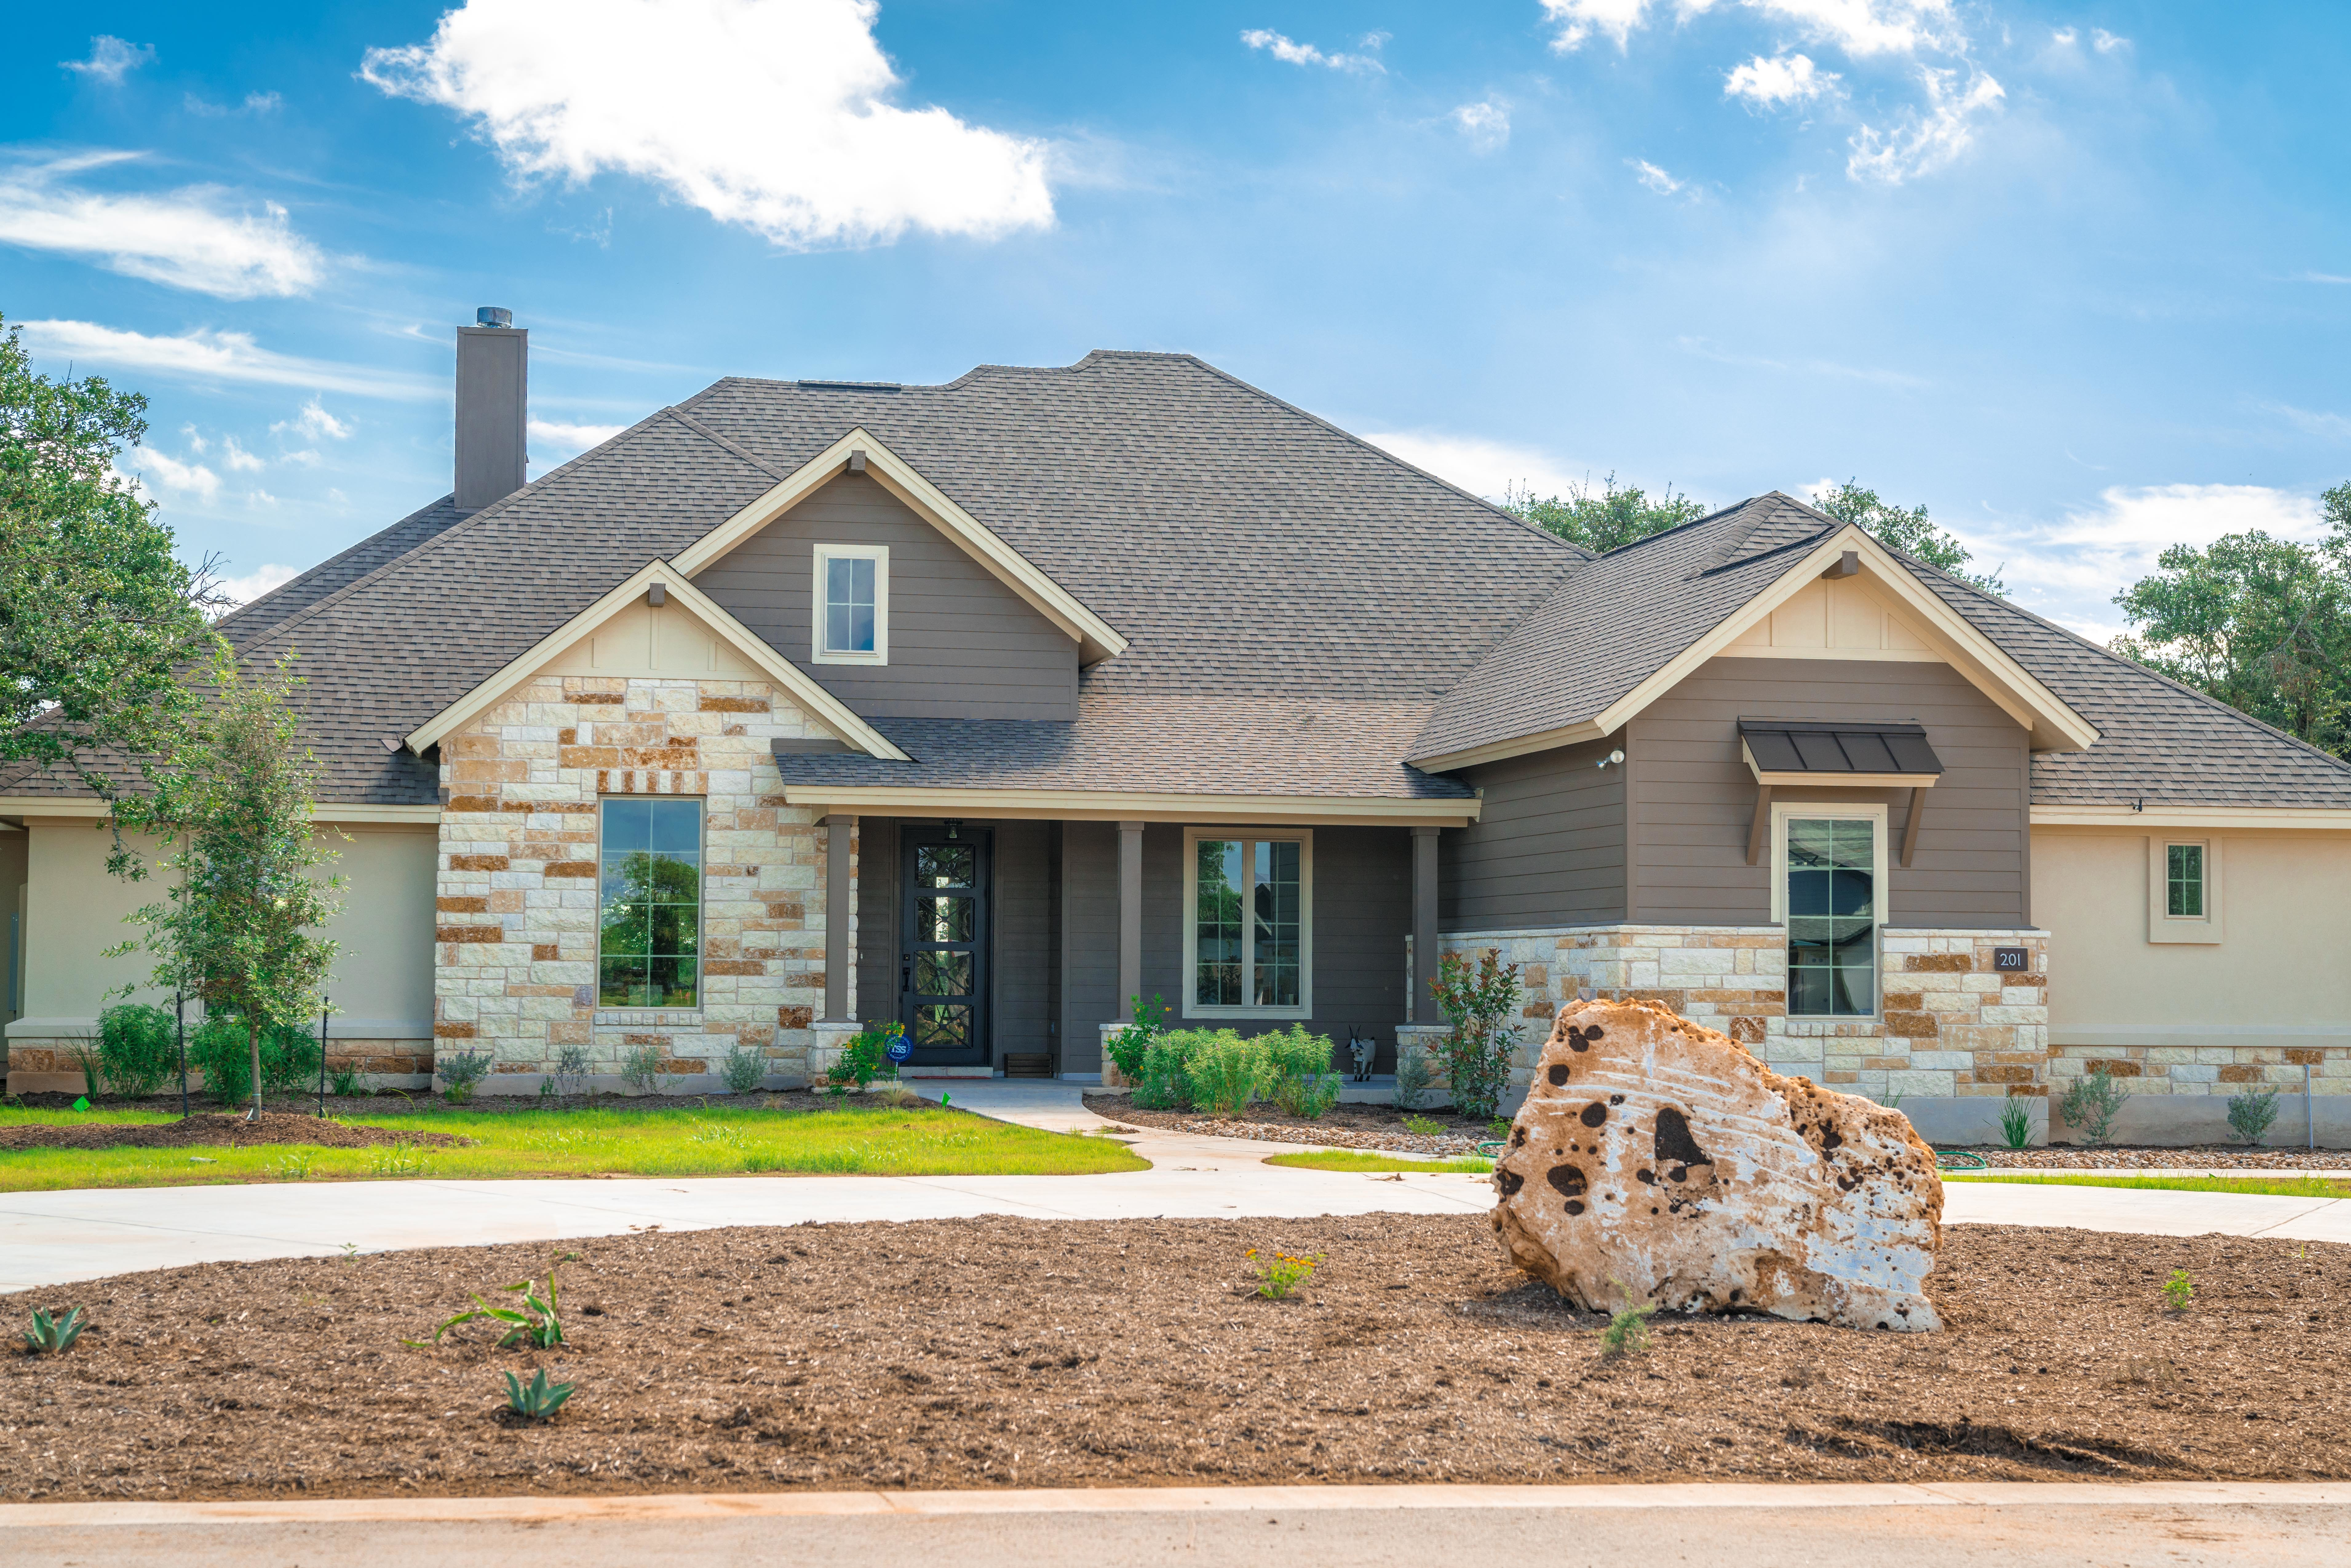 Under the direction of Jim Kirpach, Grand Endeavor's BOYL program helps clients work through site evaluation, home design and cost determination.